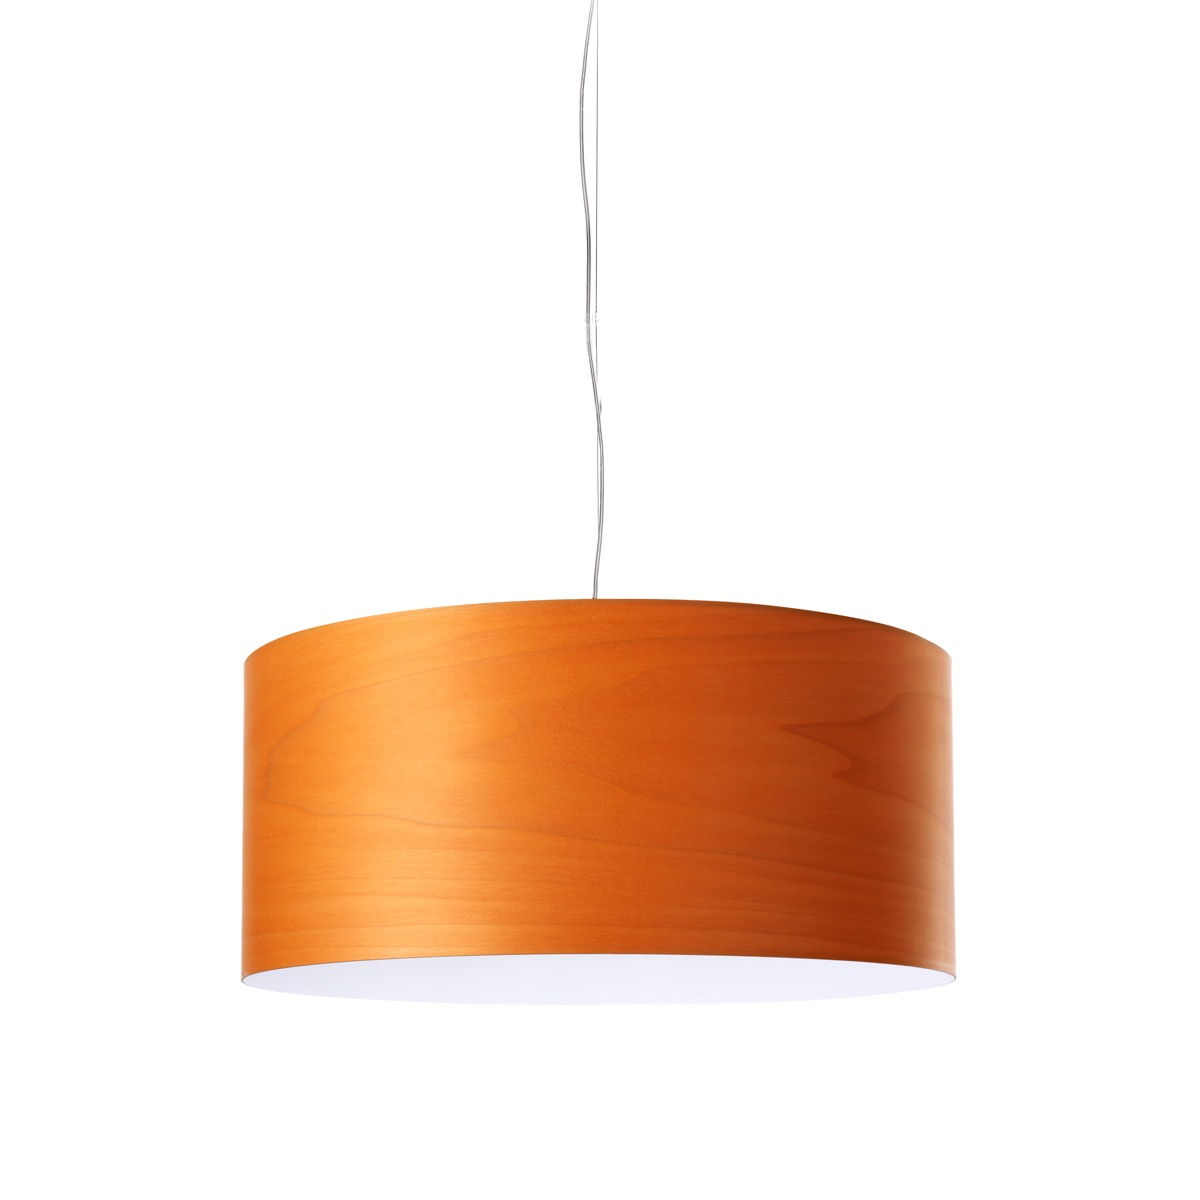 LZF Lamps Gea Small Pendelleuchte, orange